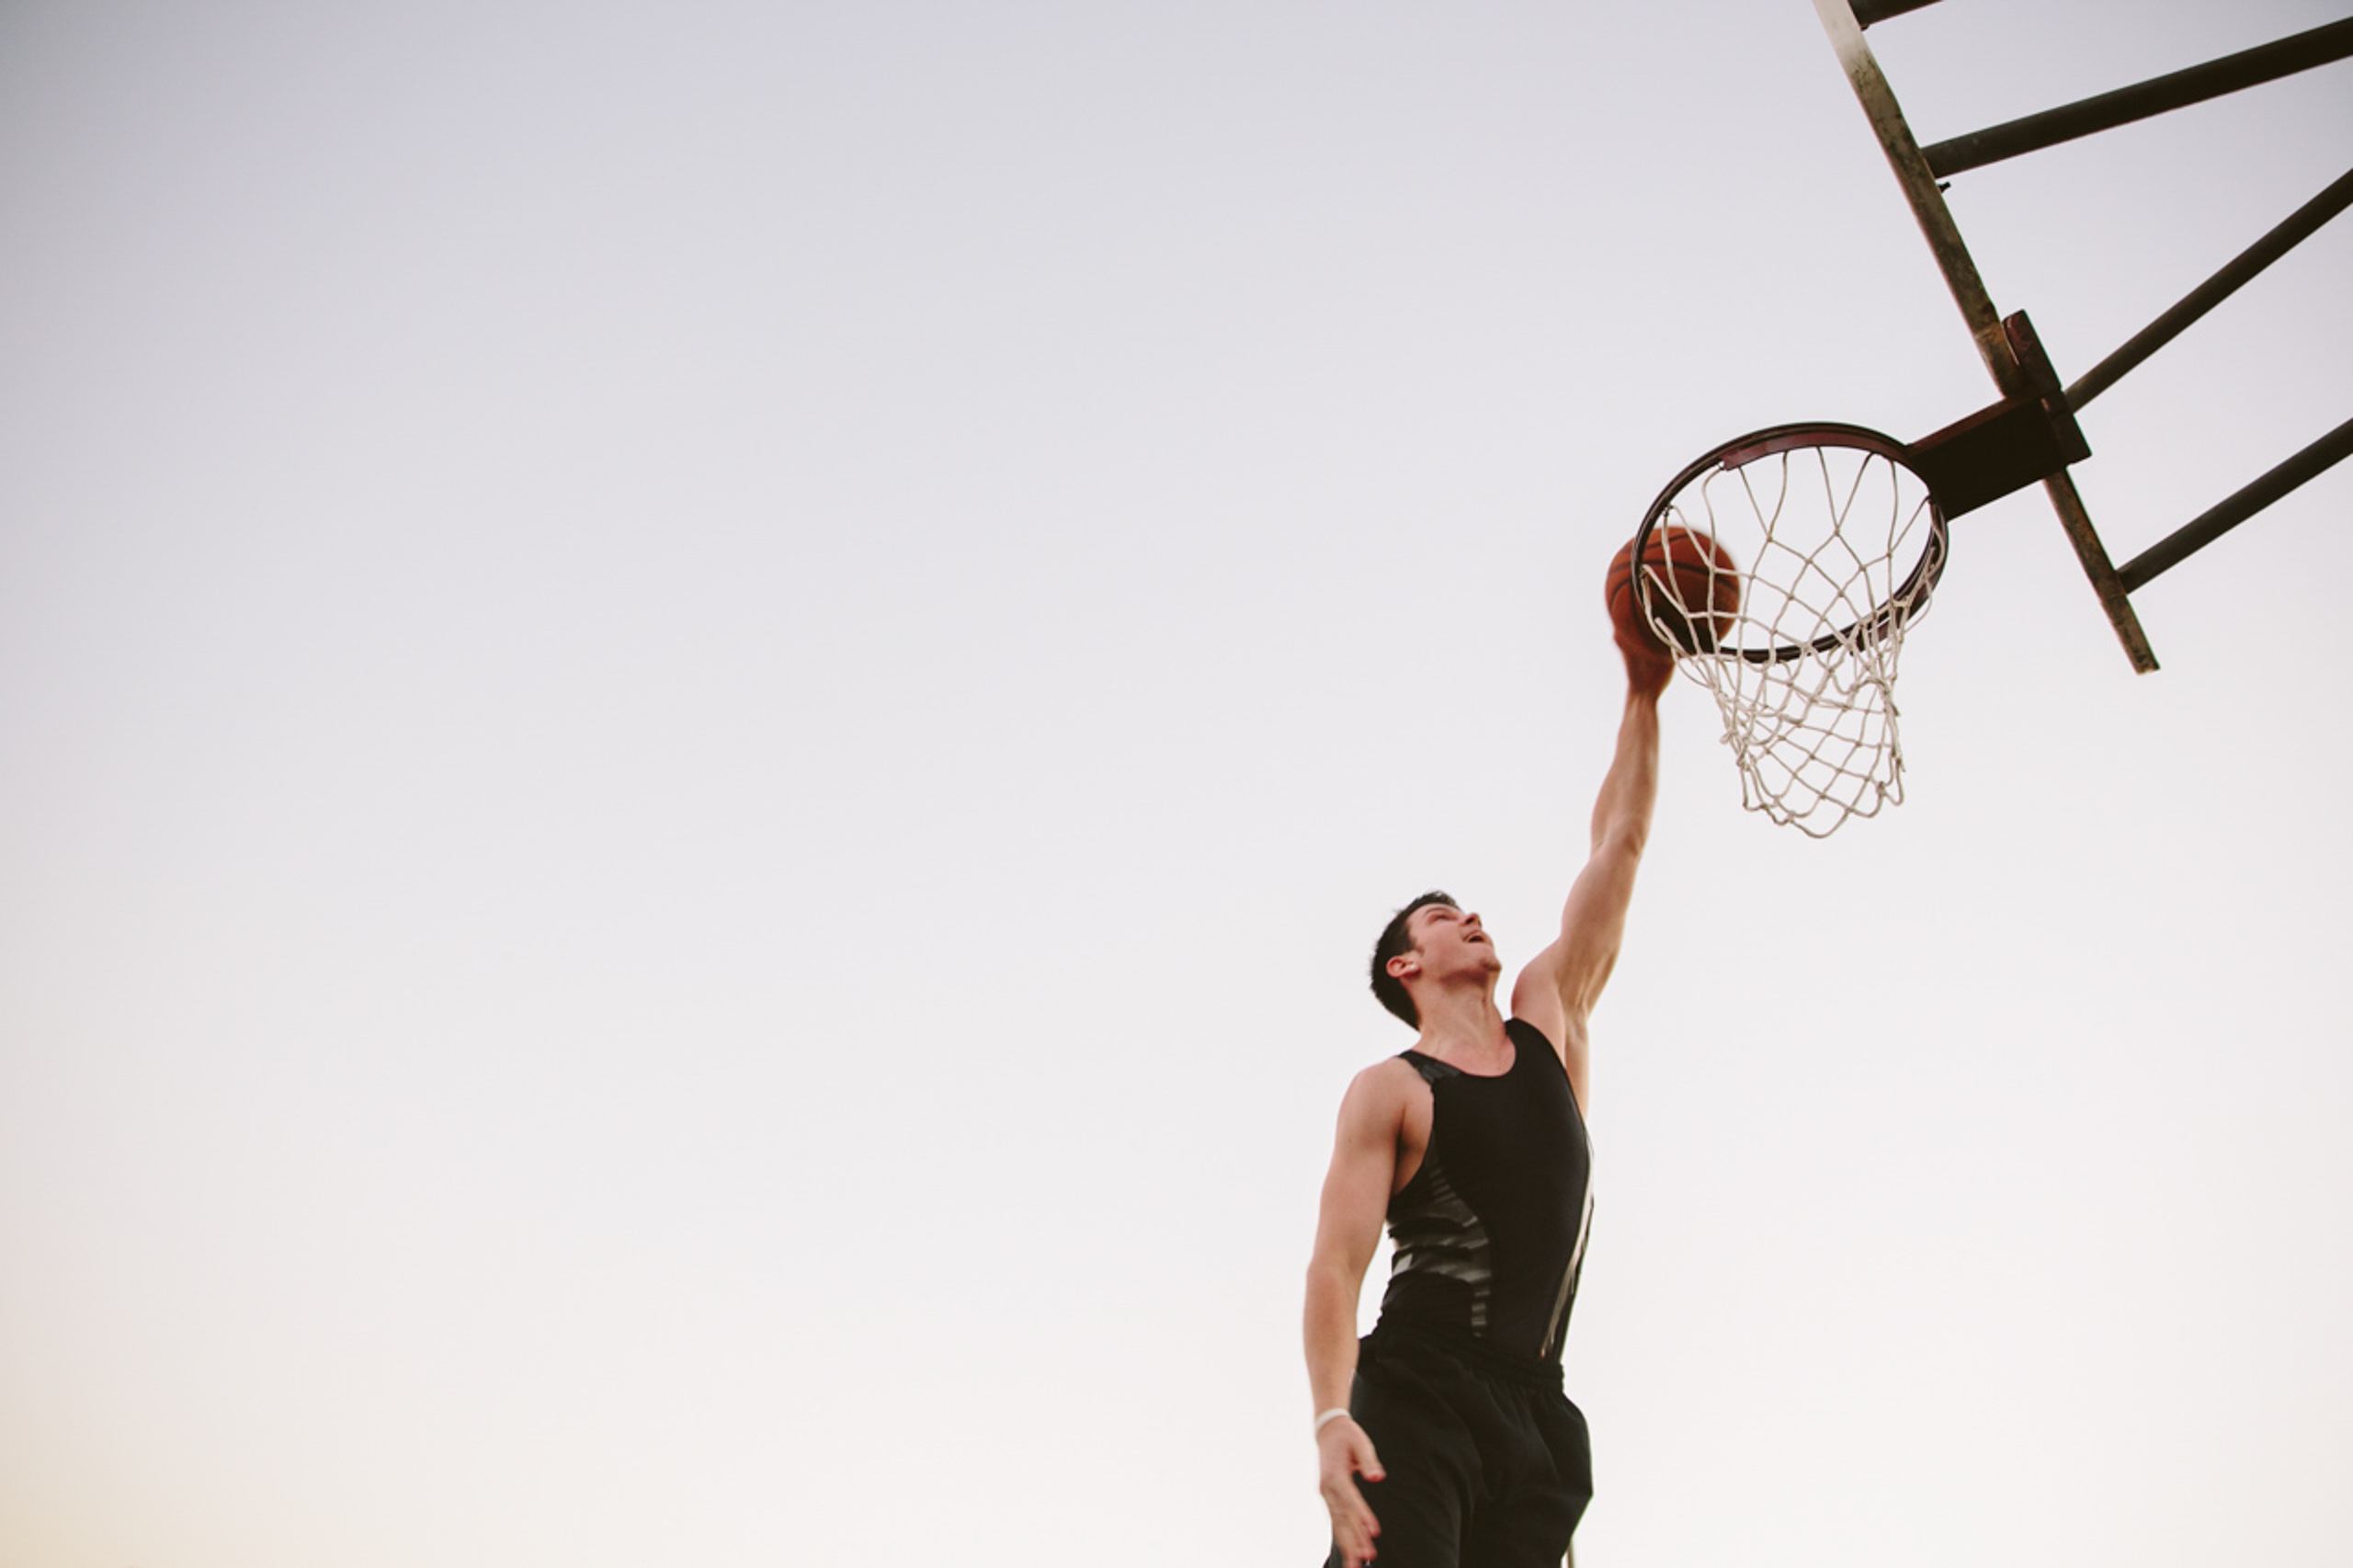 Epic shot of young man playing basketball